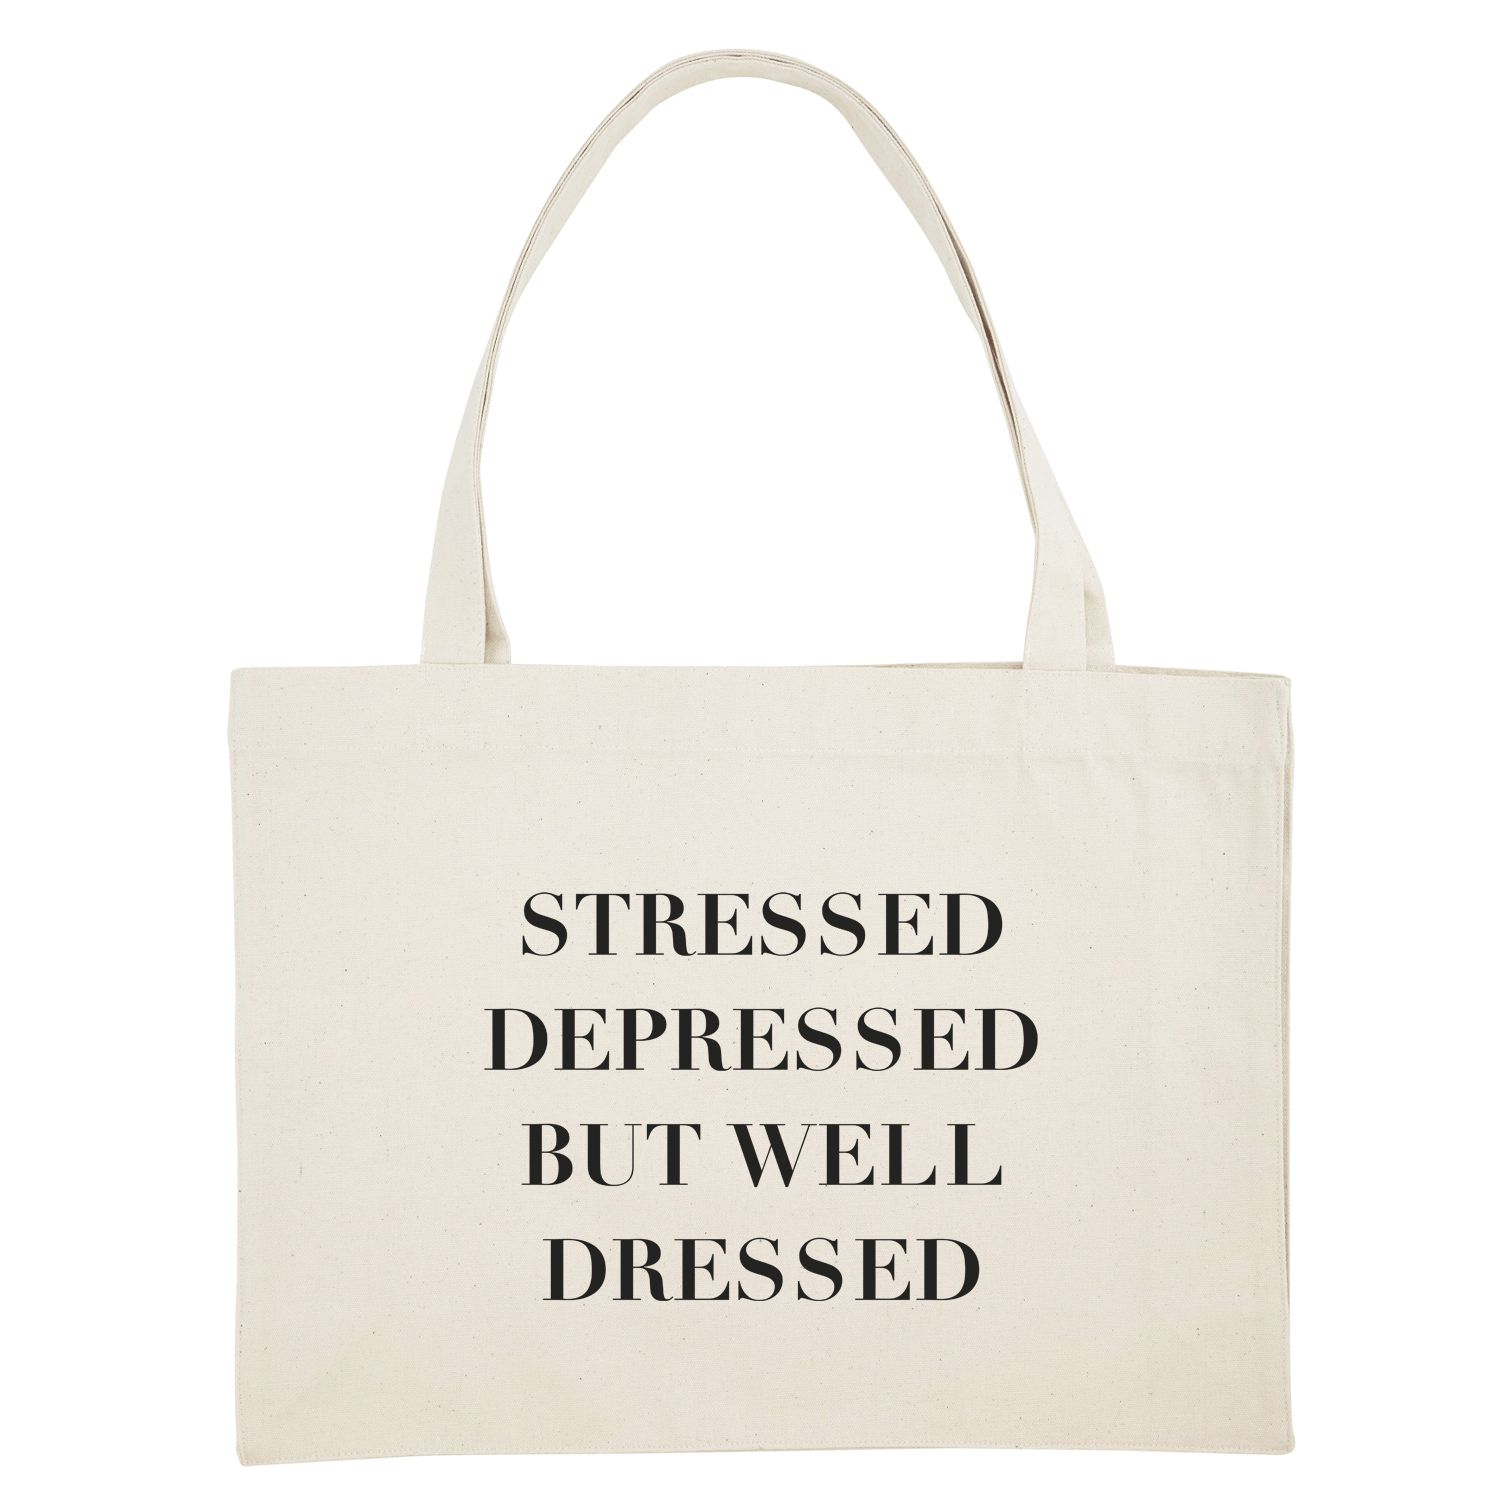 Shopping bag - Stressed depressed but well dressed